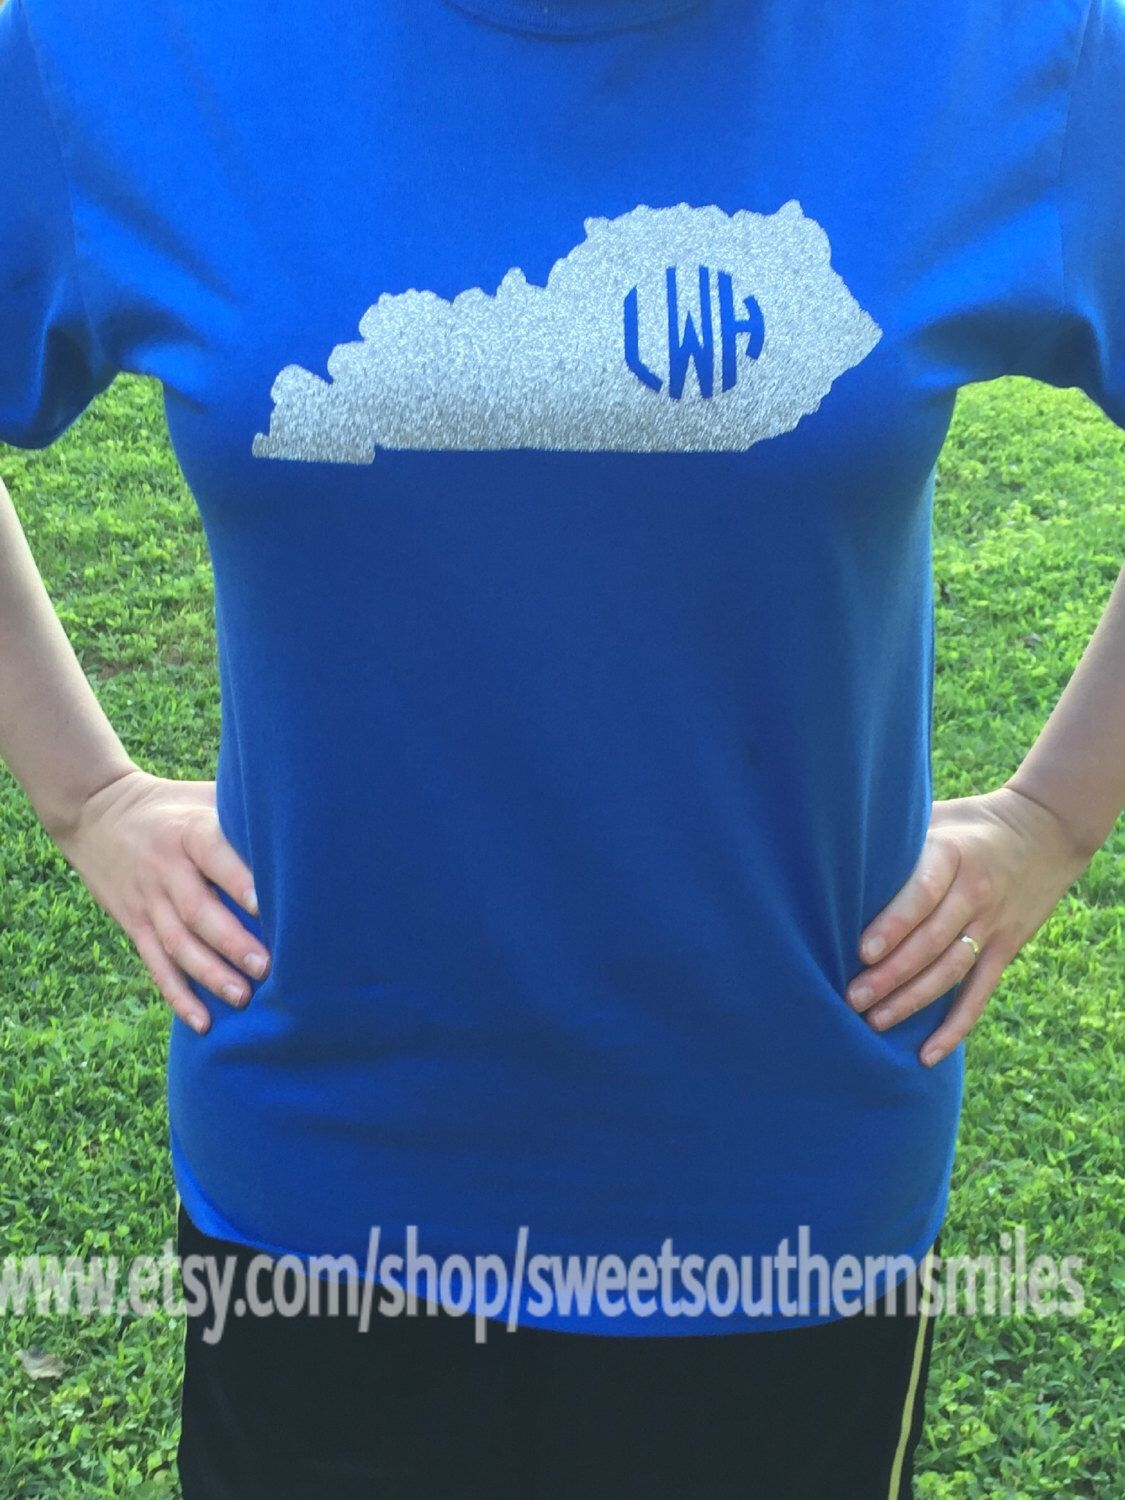 Southern State Shirt with initials (Kentucky) (Other states as well) by SweetSouthernSmiles on Etsy https://www.etsy.com/listing/240902335/southern-state-shirt-with-initials